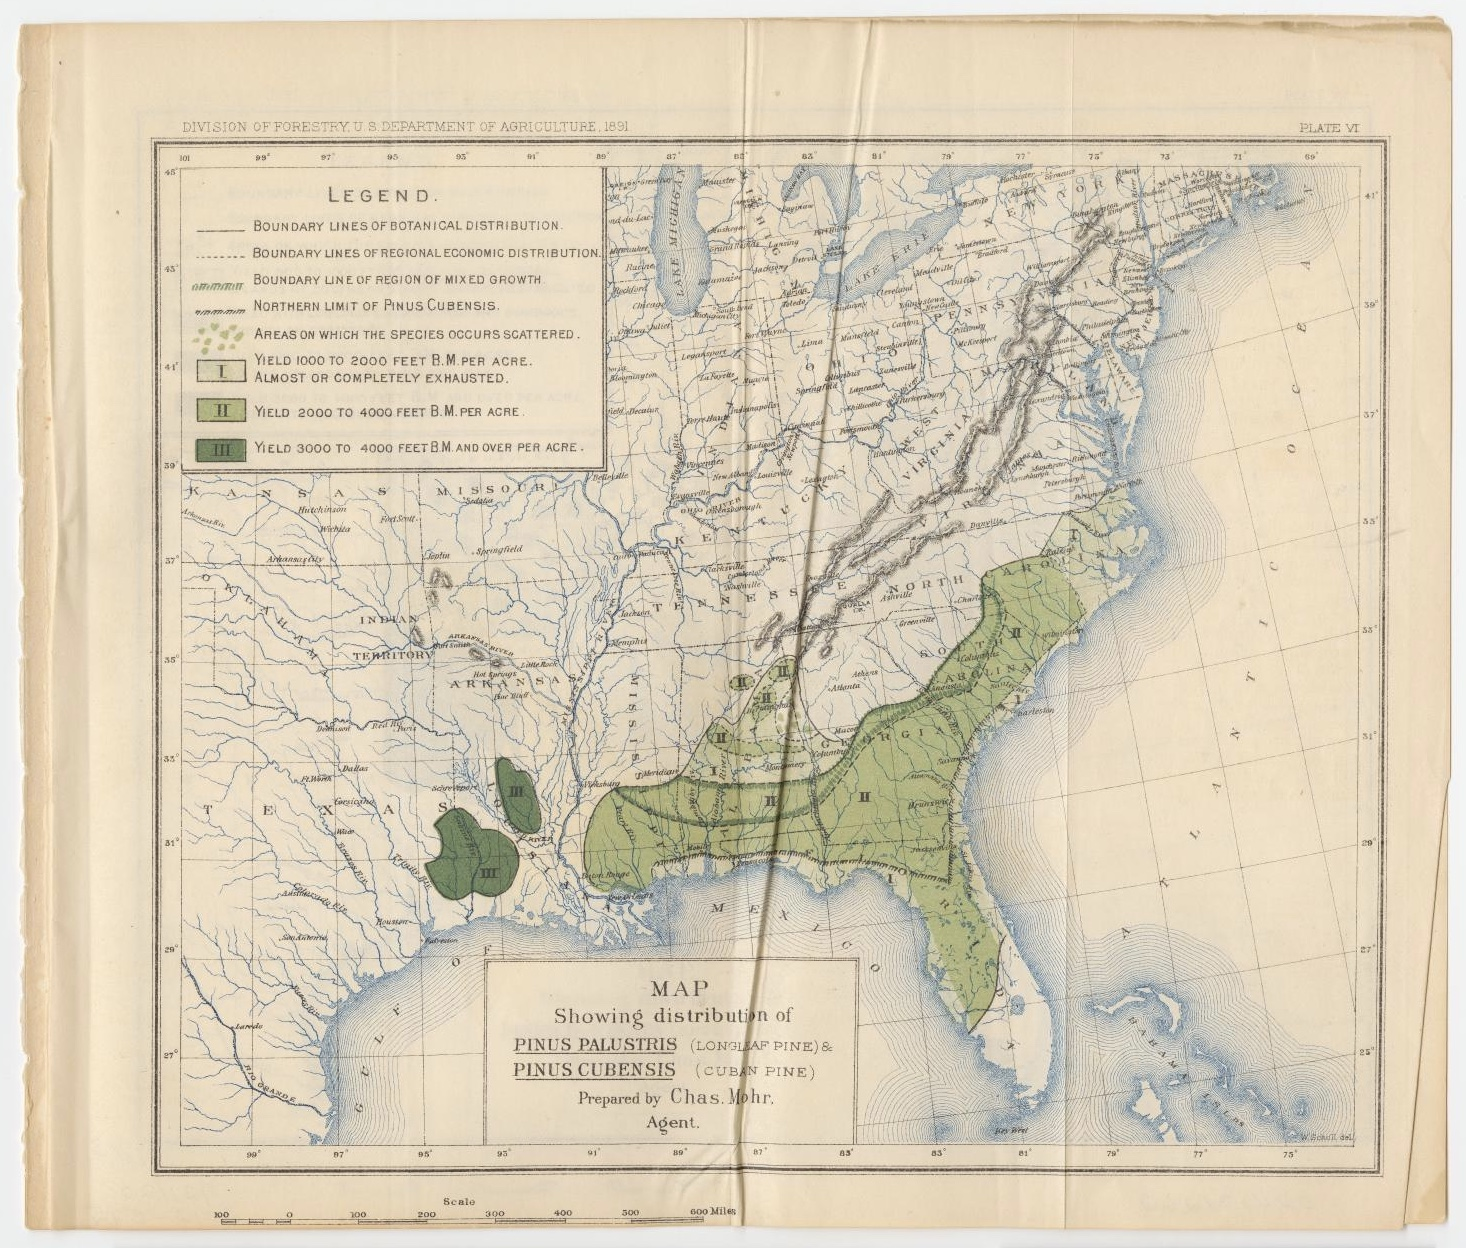 Map showing distribution of Pinus Palustris (Longleaf Pine) & Pinus Cubensis (Cuban Pine) in 1891 by the Division of Forestry US Department of Agriculture